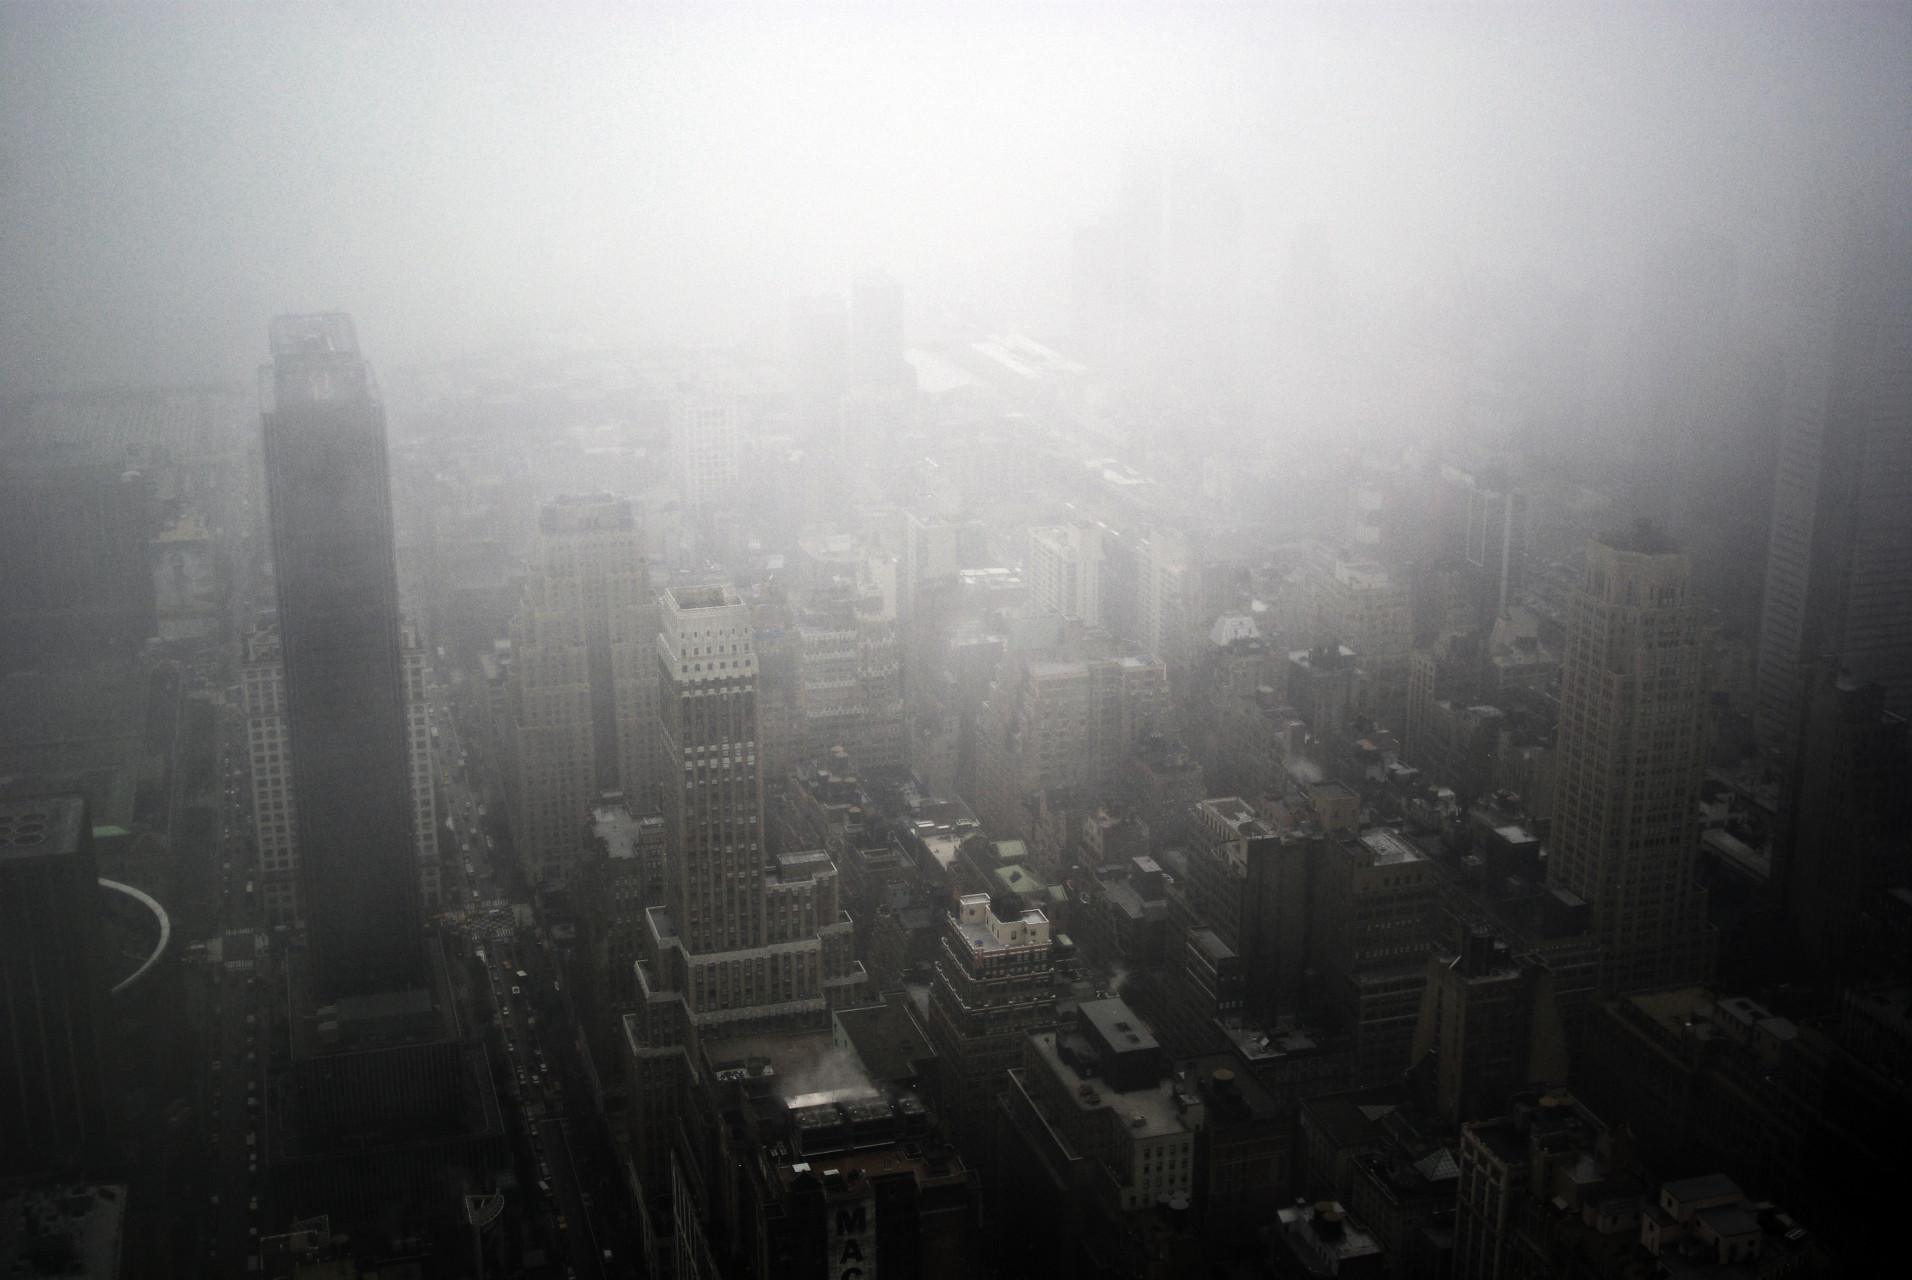 New-York-skyline-view-from-Empire-State-Building-fog_IGP2835b